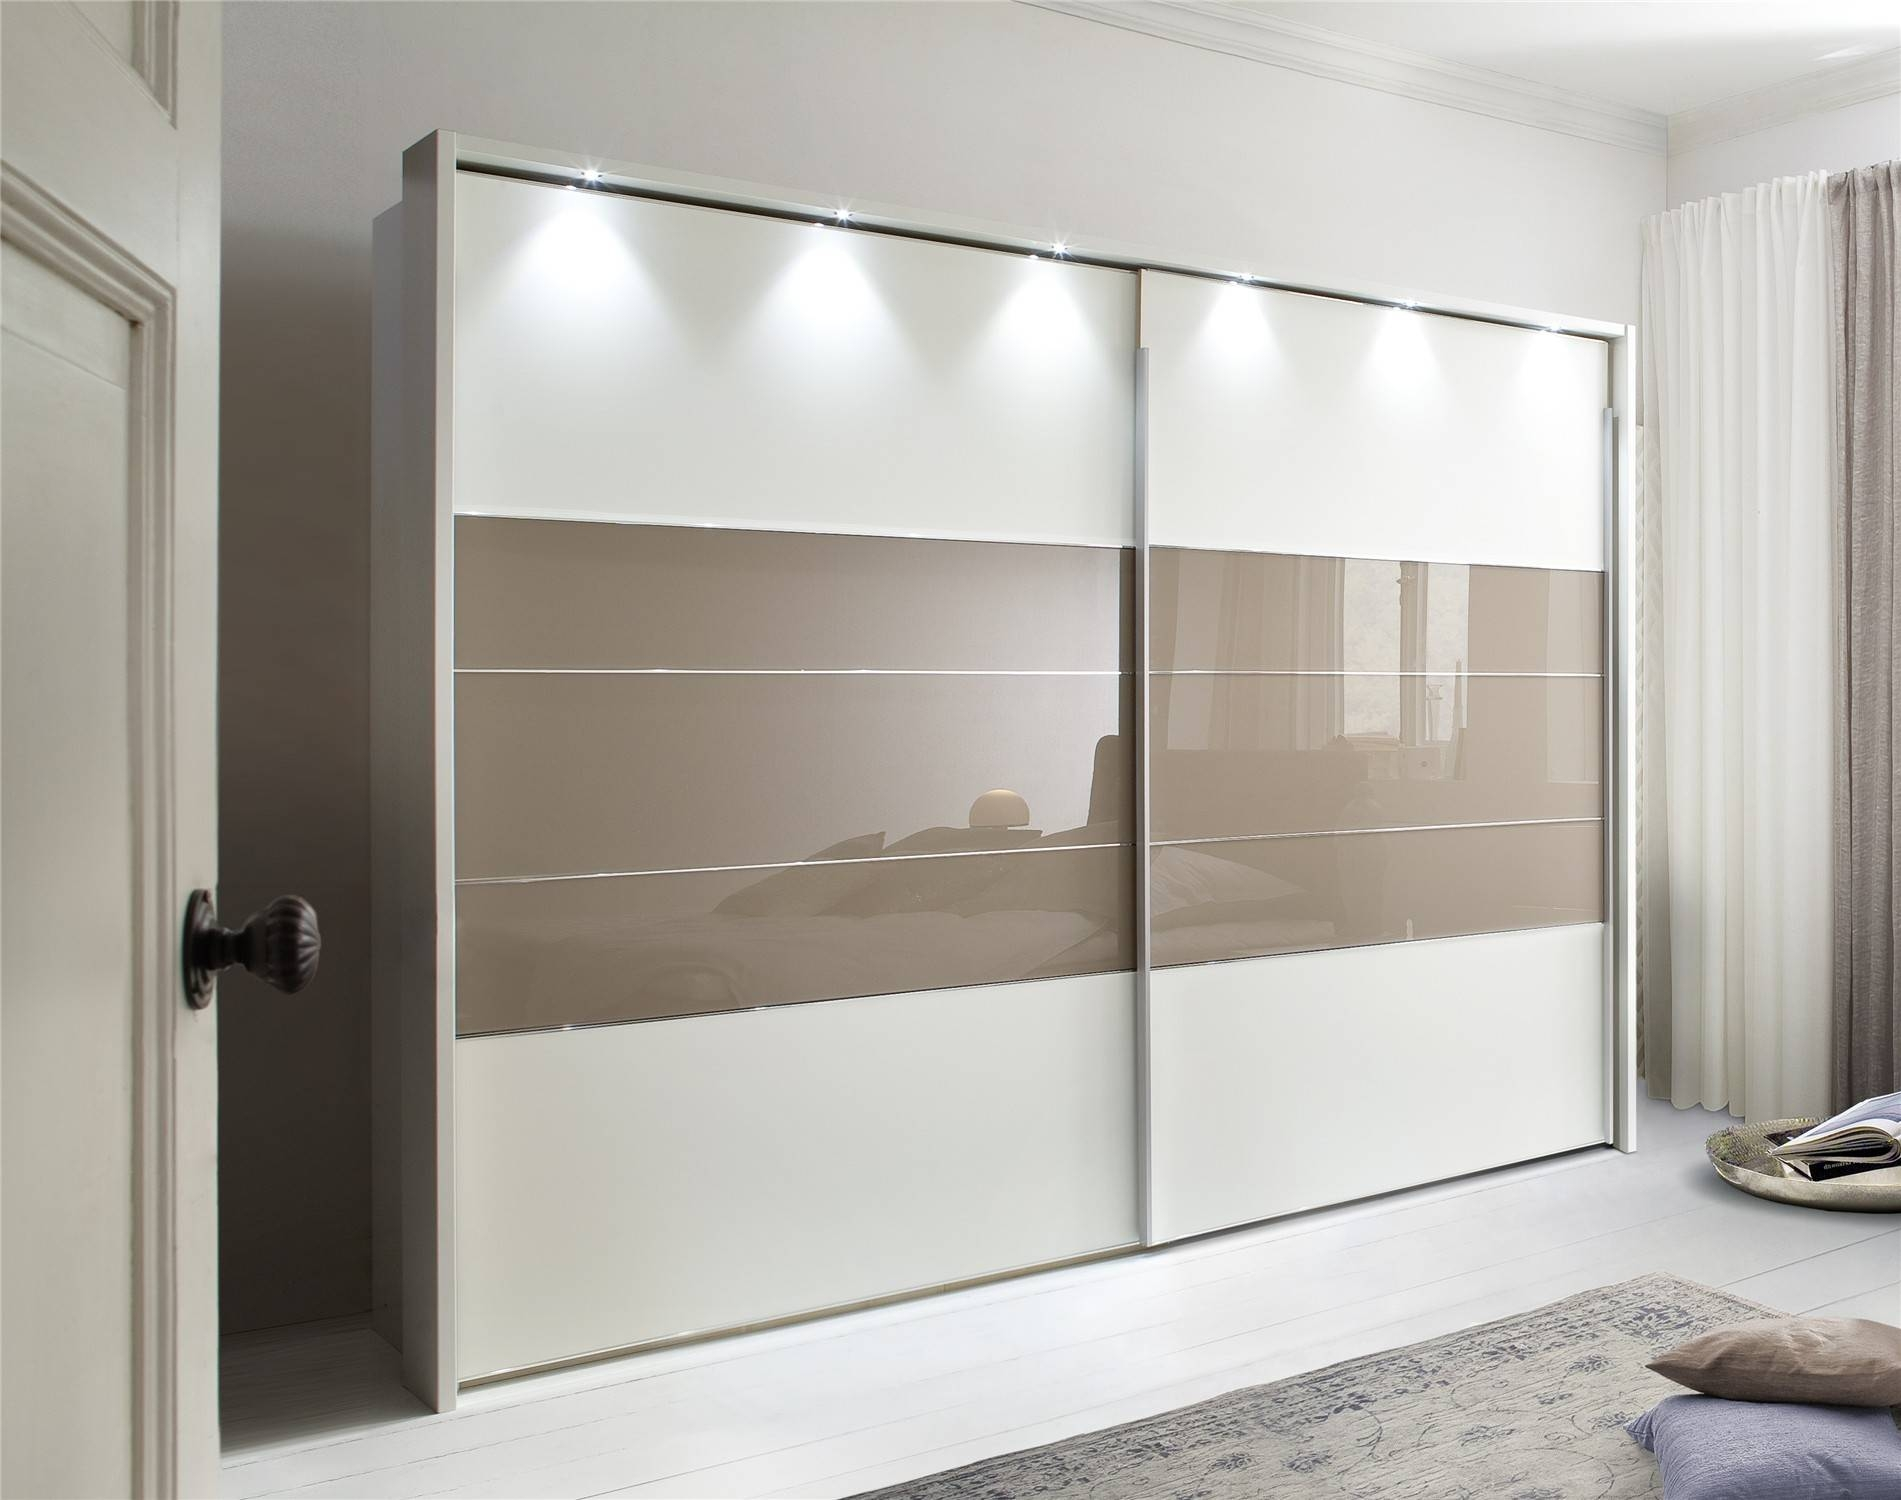 Cheap Wardrobes With Sliding Doors | Hallway Furniture Ideas inside Cheap Mirrored Wardrobes (Image 5 of 15)